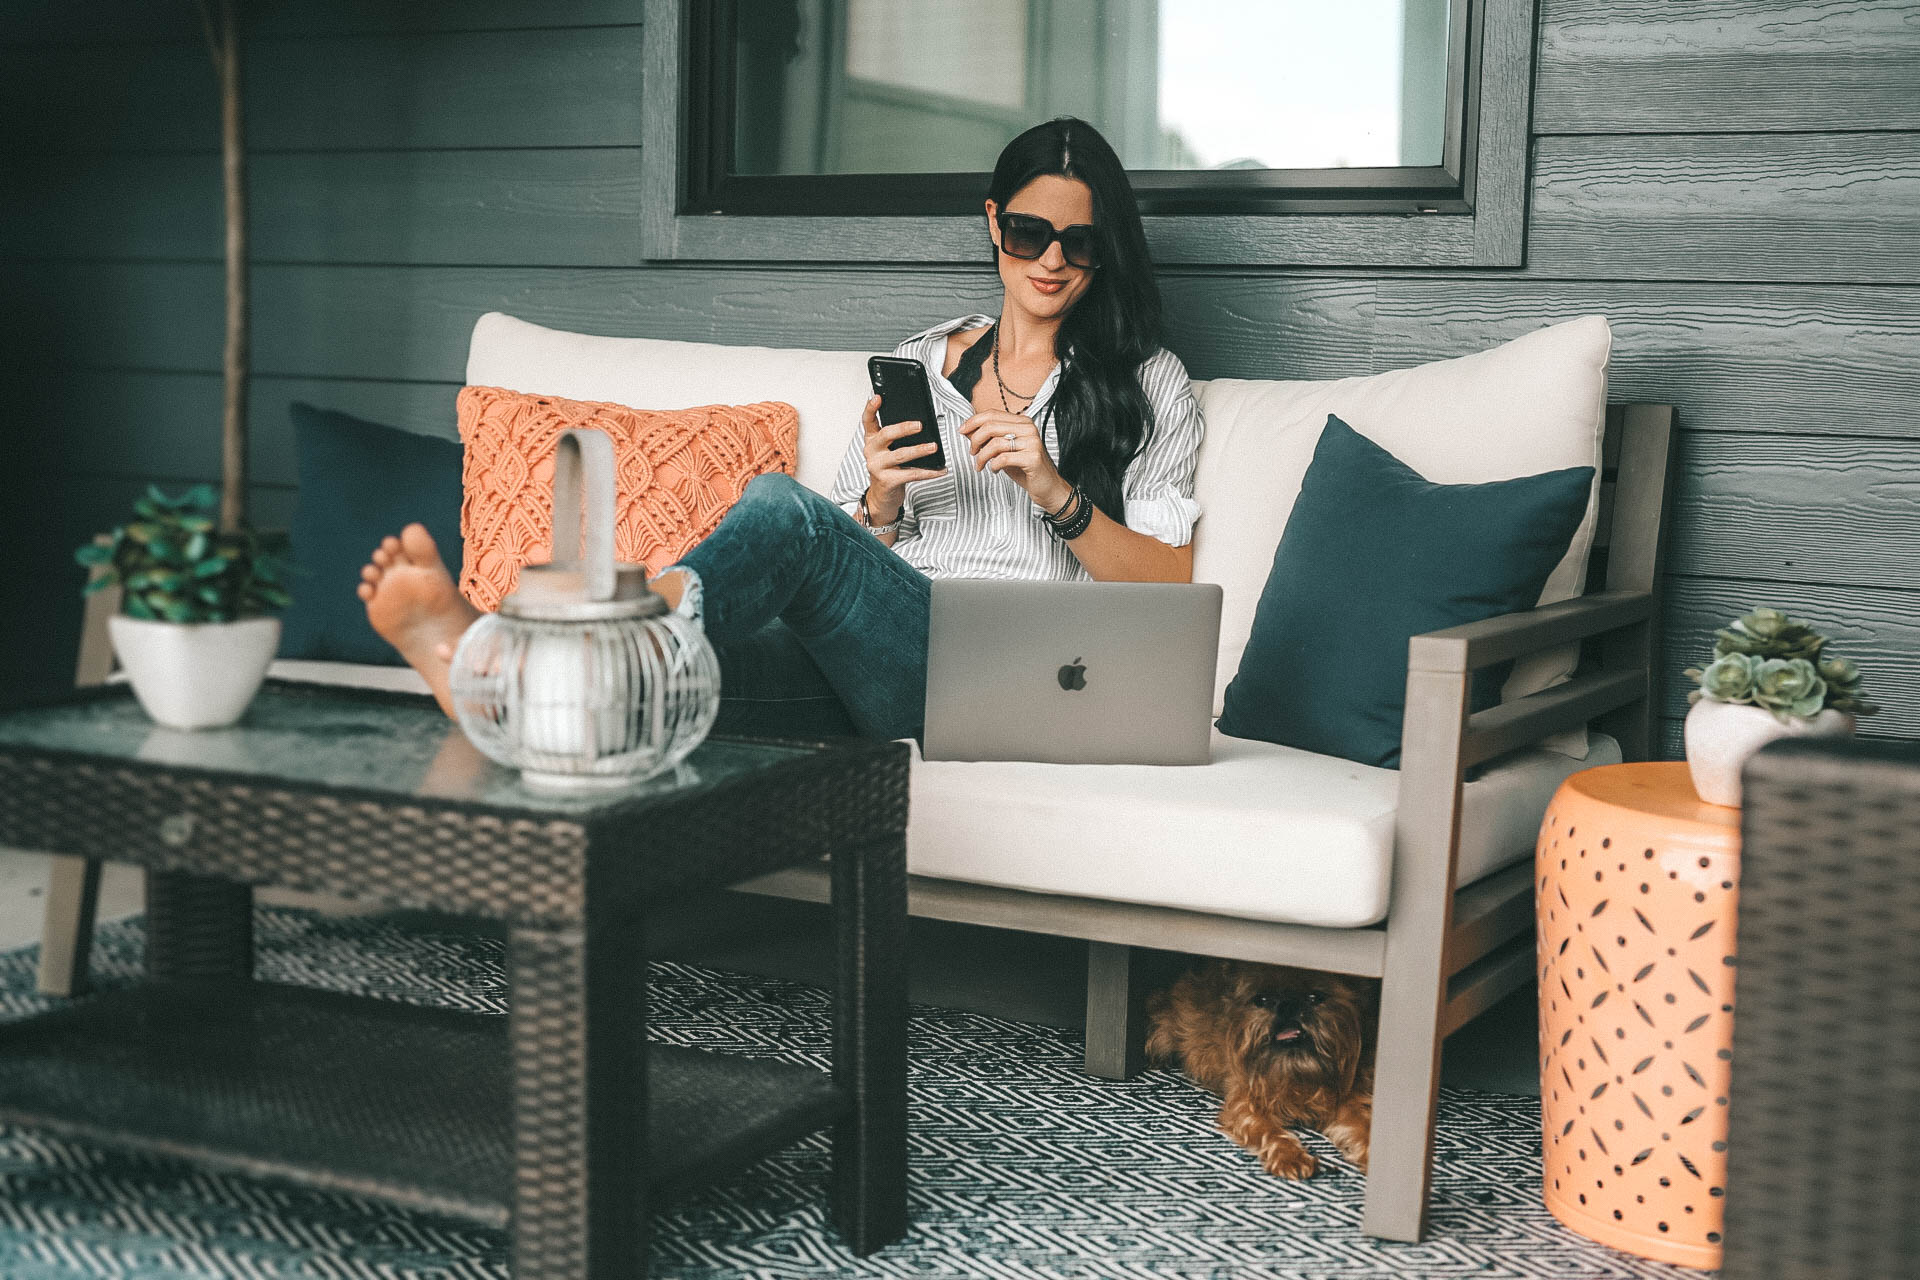 tips and tricks on how to successfully get more paid brand collaborations on your blog and Instagram as a blogger or influencer | {How to Get More Paid Brand Collaborations} featured by popular Austin Fashion blogger Dressed to Kill